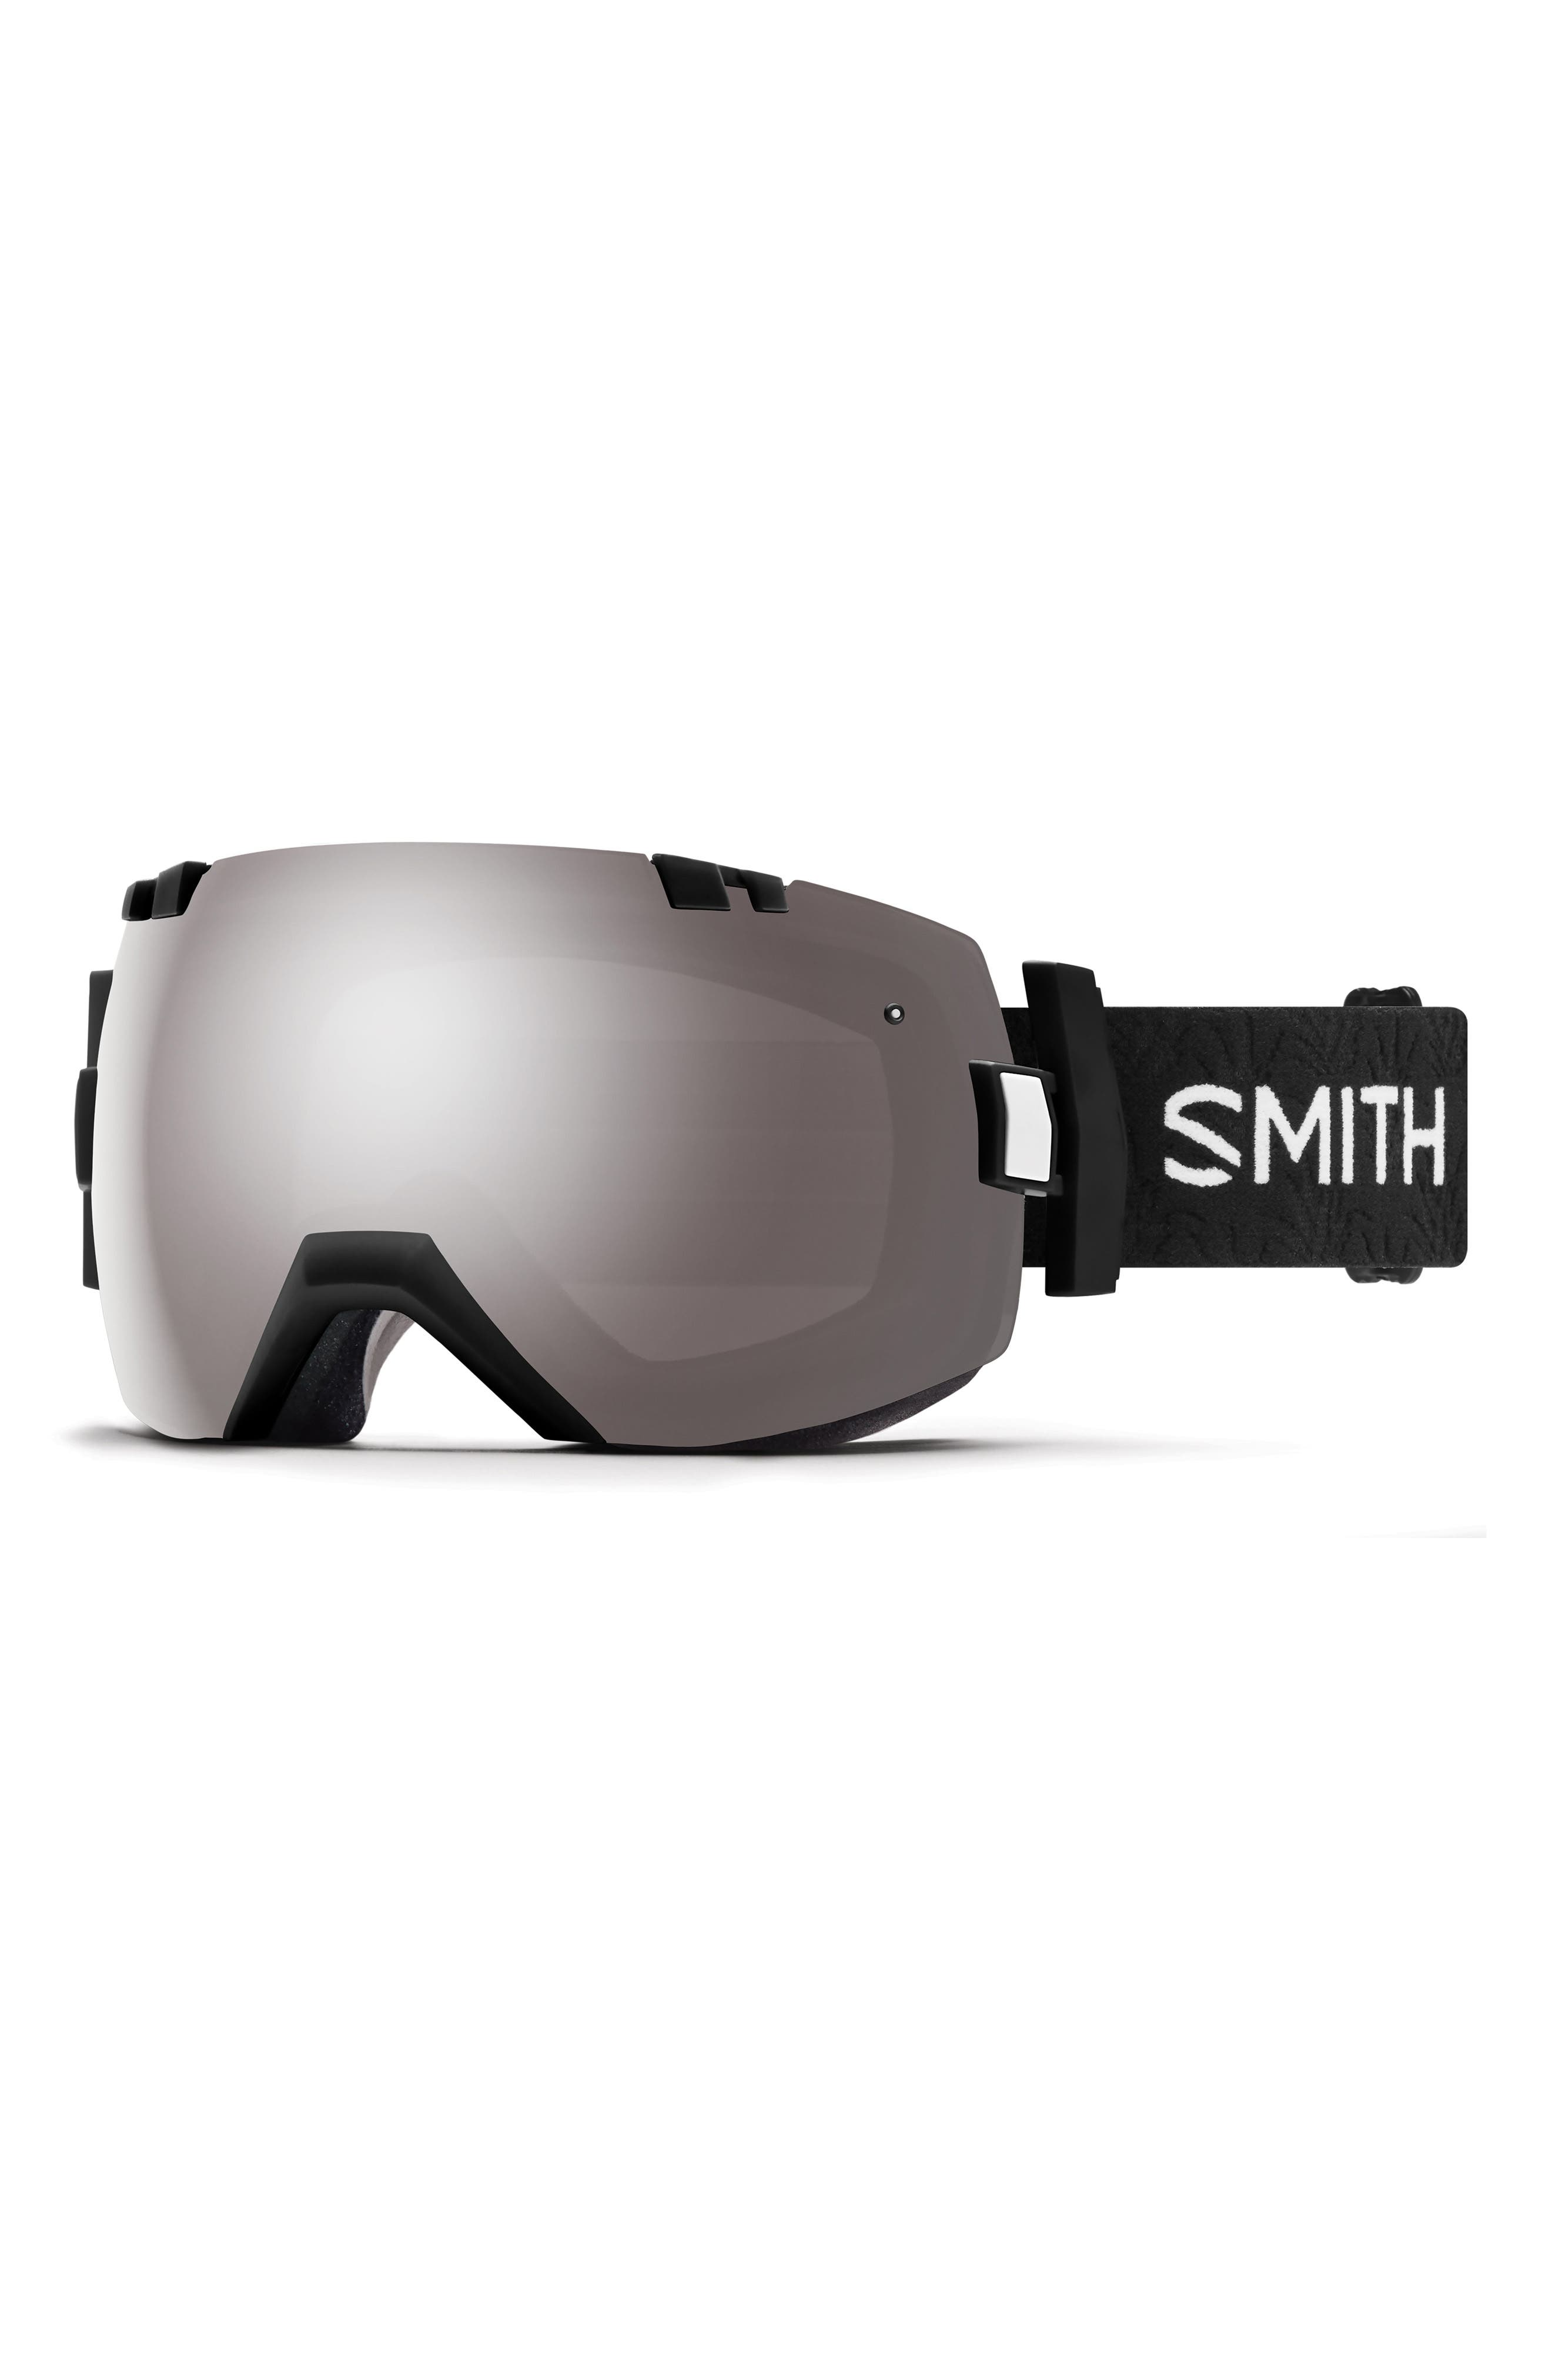 SMITH I/OX 205MM CHROMAPOP SNOW GOGGLES - MEAN FOLK